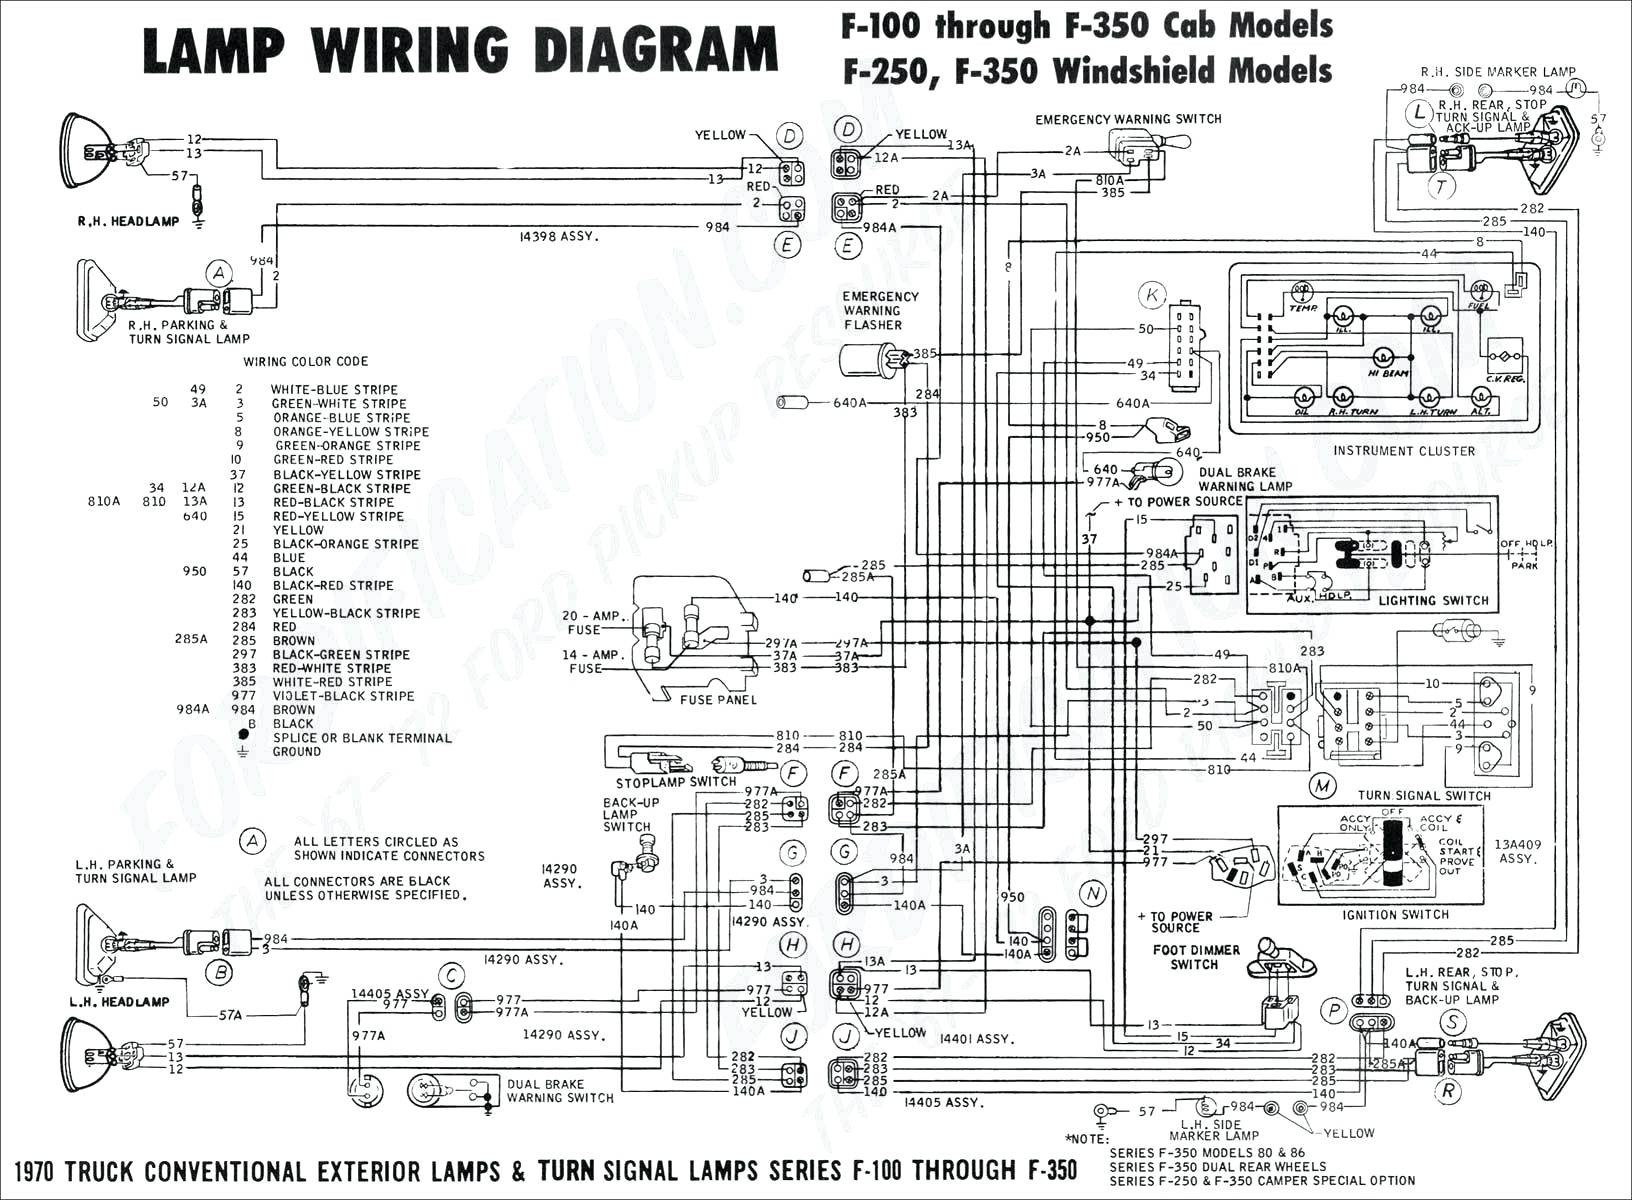 1997 Ford L8000 Wiring Diagram Wiring Diagram Touch Report1 Touch Report1 Maceratadoc It